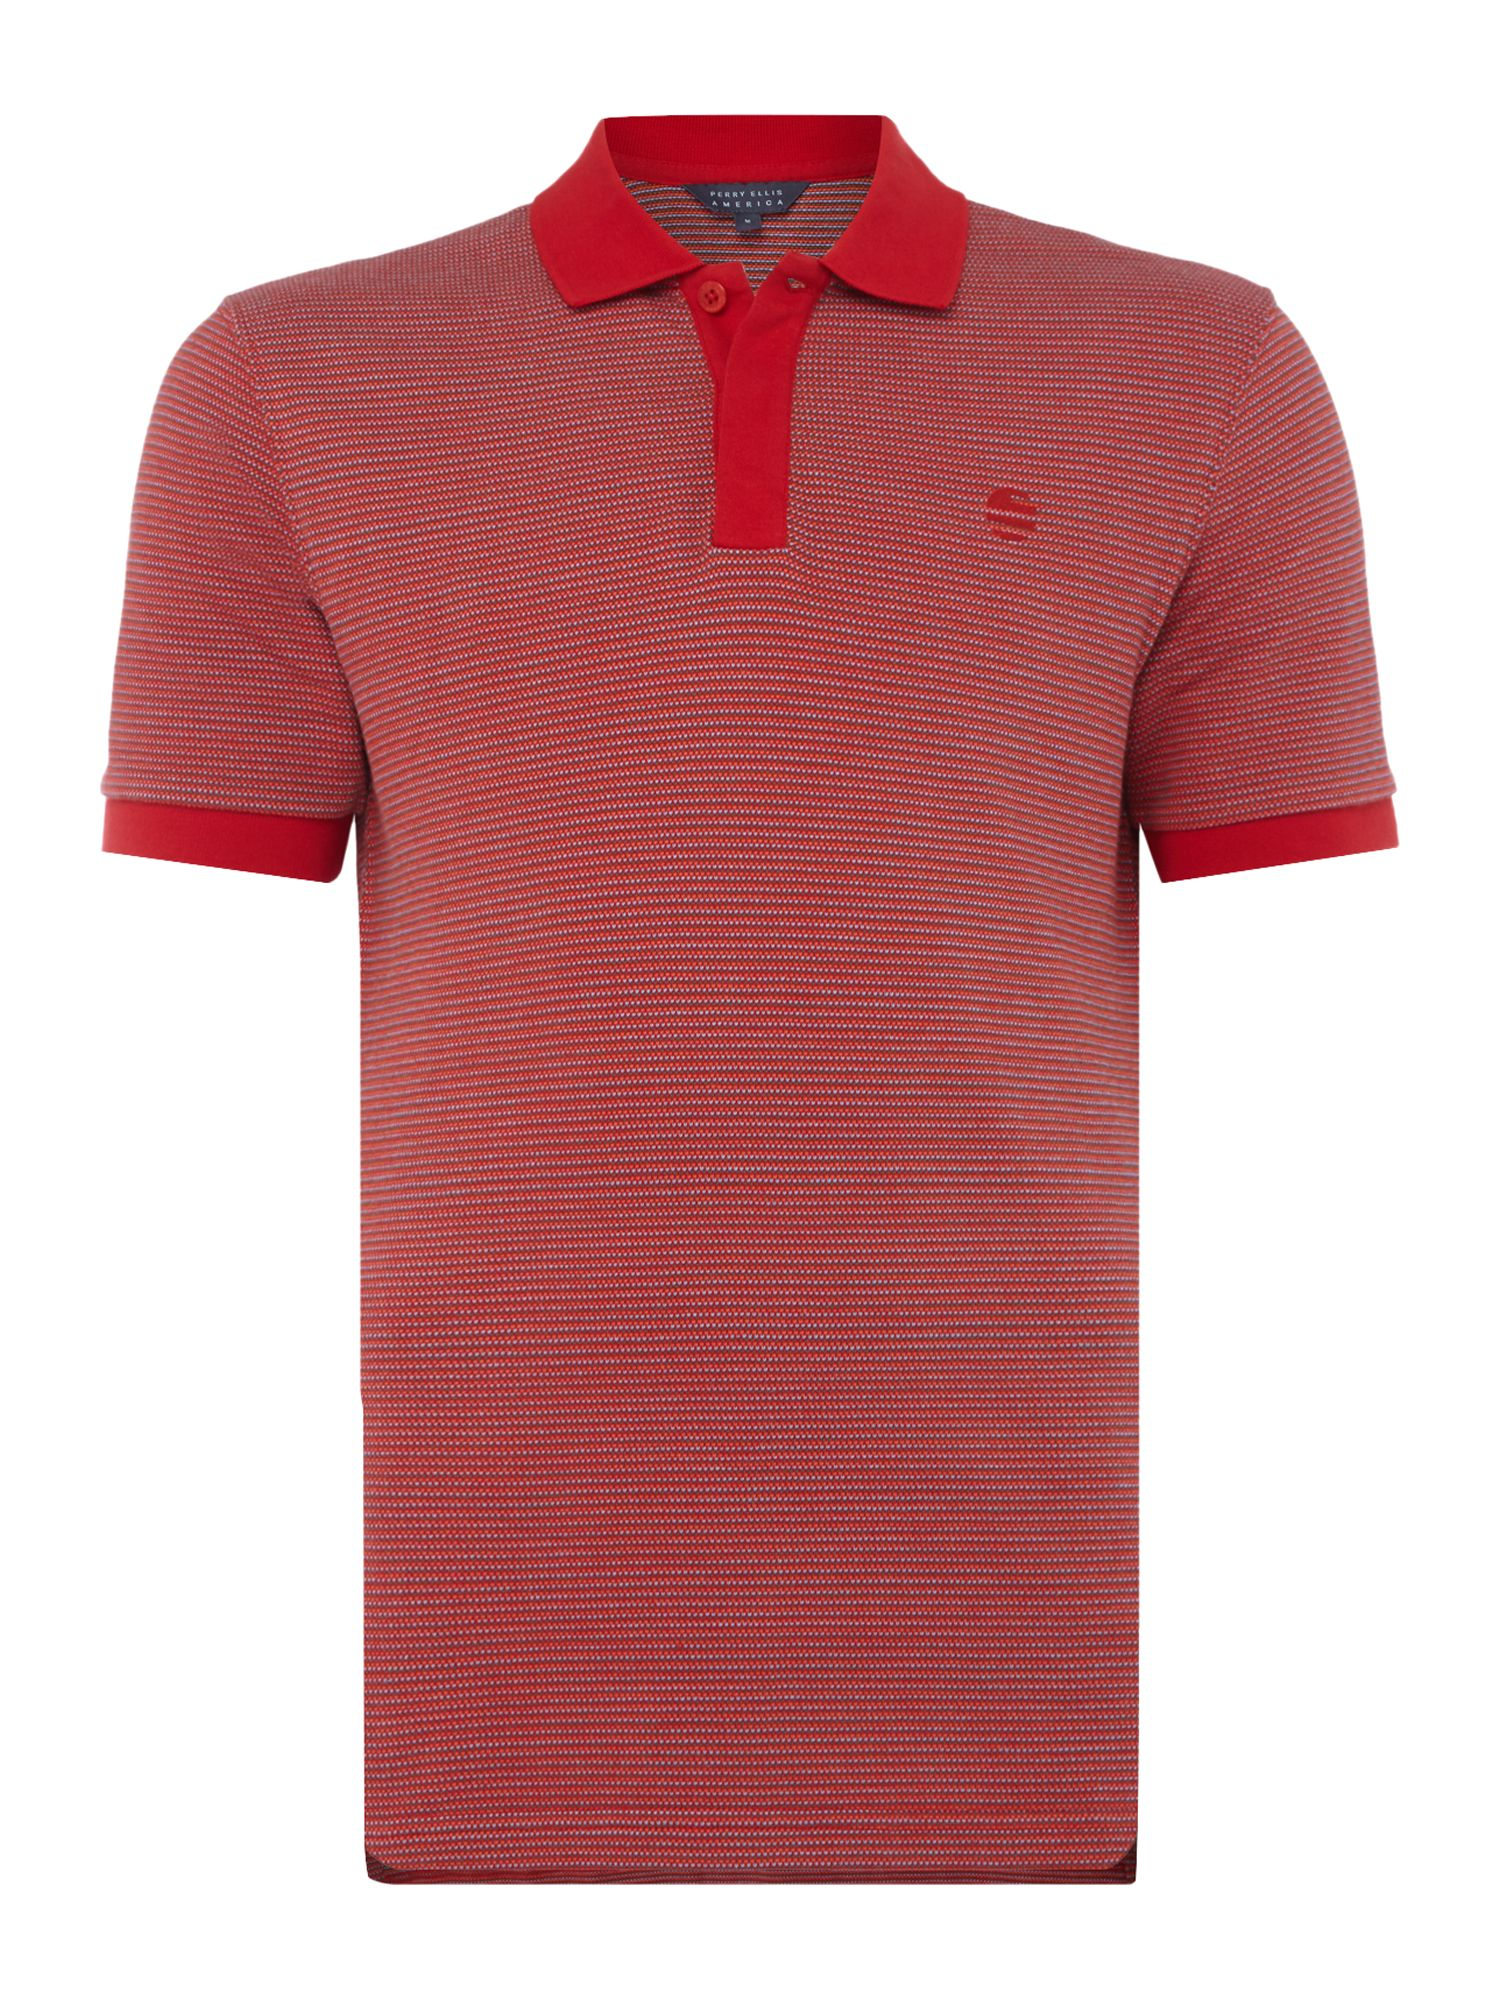 Men's Perry Ellis America Birdseye Texture Short-Sleeve Cotton Polo-Shirt, Red